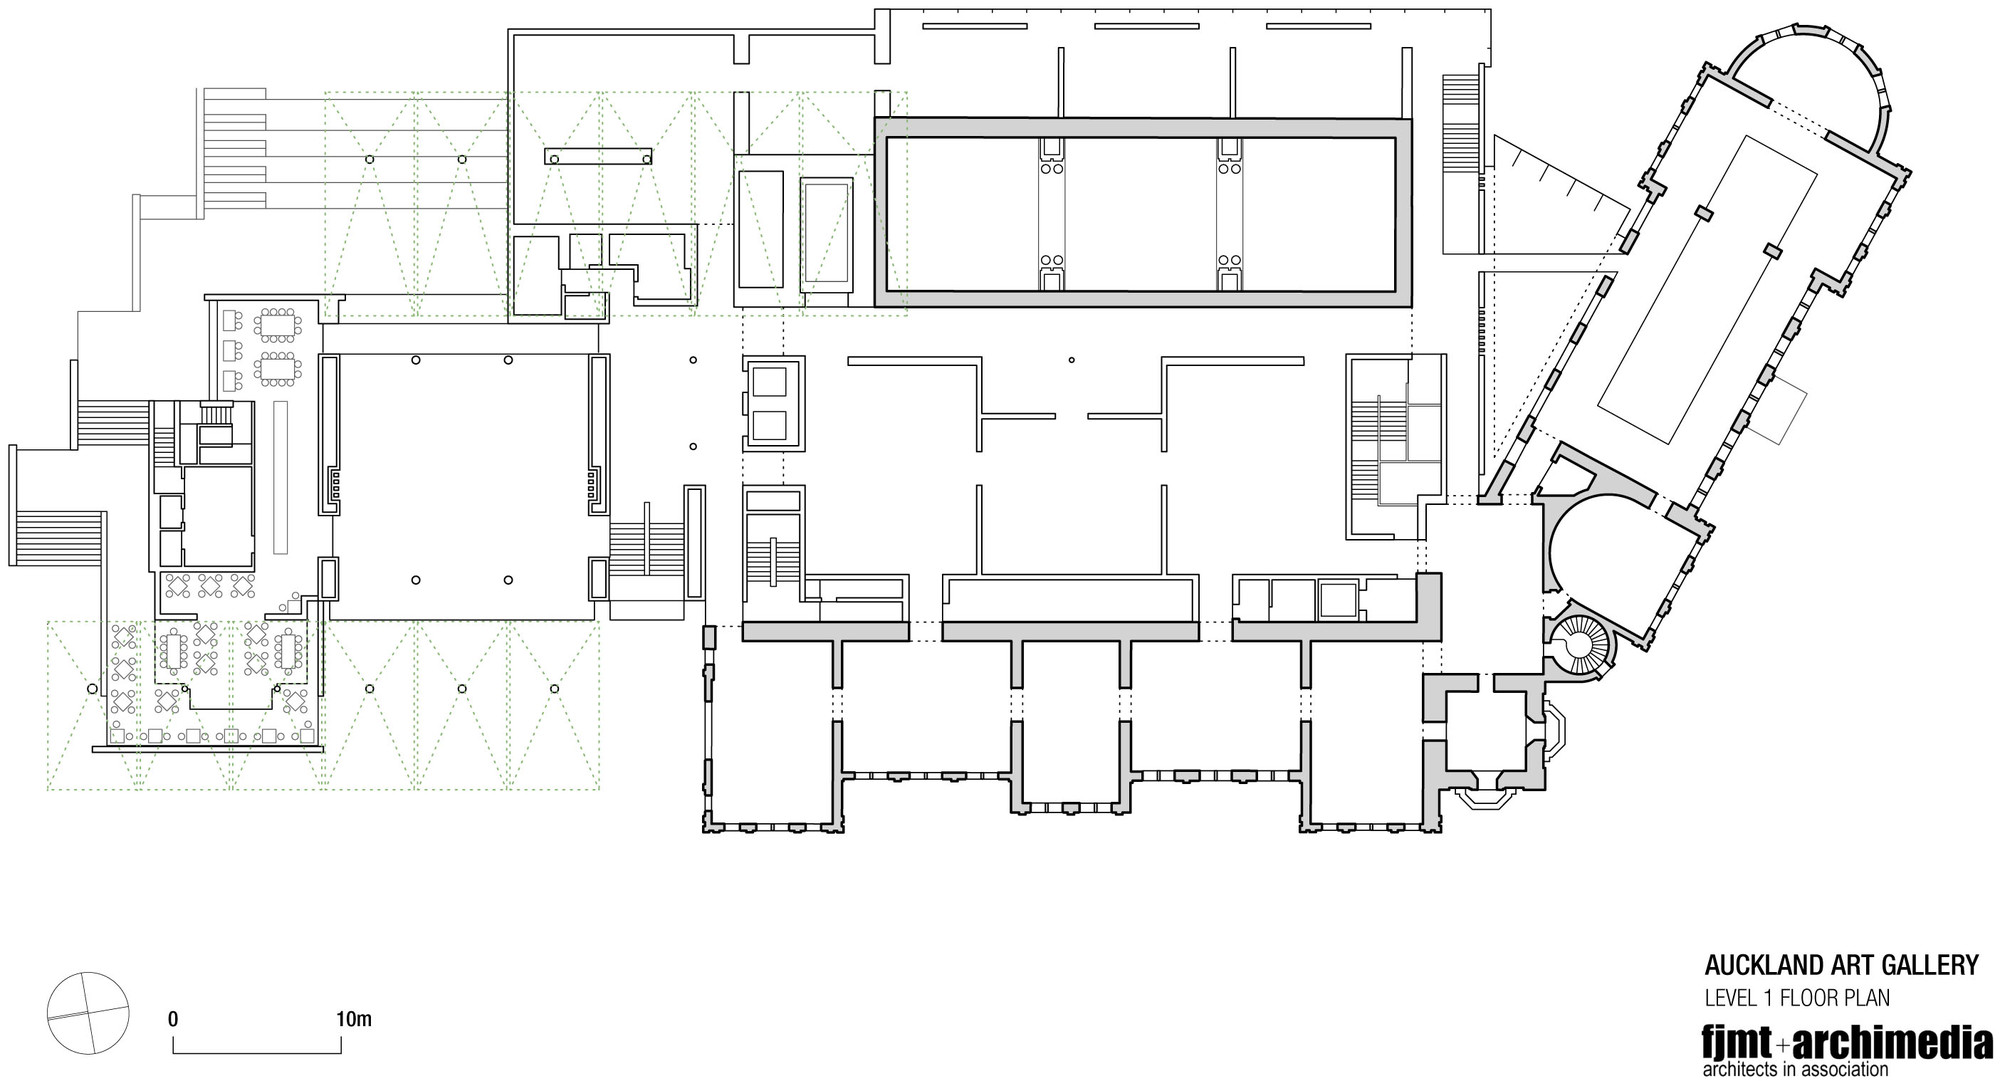 528432c6e8e44e8e720000fa Auckland Art Gallery Fjmt Archimedia First Floor Plan further 563c9ccae58ece8ce300007c Hangzhou East Railway Station Csadi Elevated Level Floor Plan as well Ground as well 543f1369c07a802a69000325 La Brea Affordable Housing Patrick Tighe John V Mutlow 3rd Floor Plan as well Mtm manjeera. on floor plans